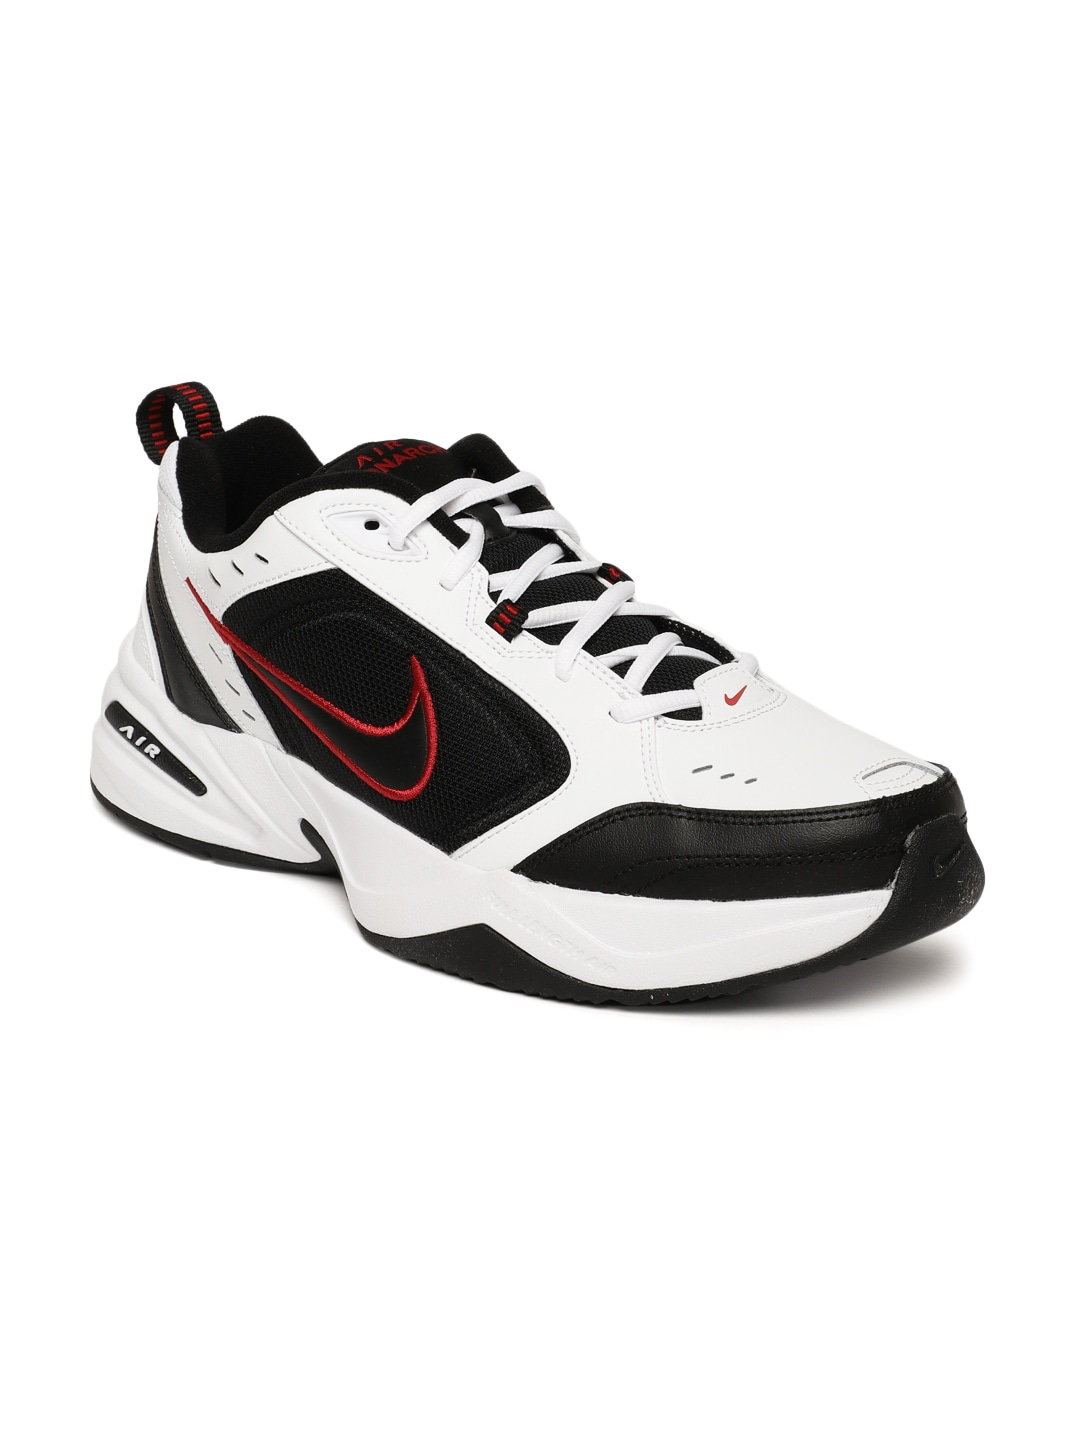 a2e912e9ce4f Nike Footwear - Buy Nike Footwear Online in India